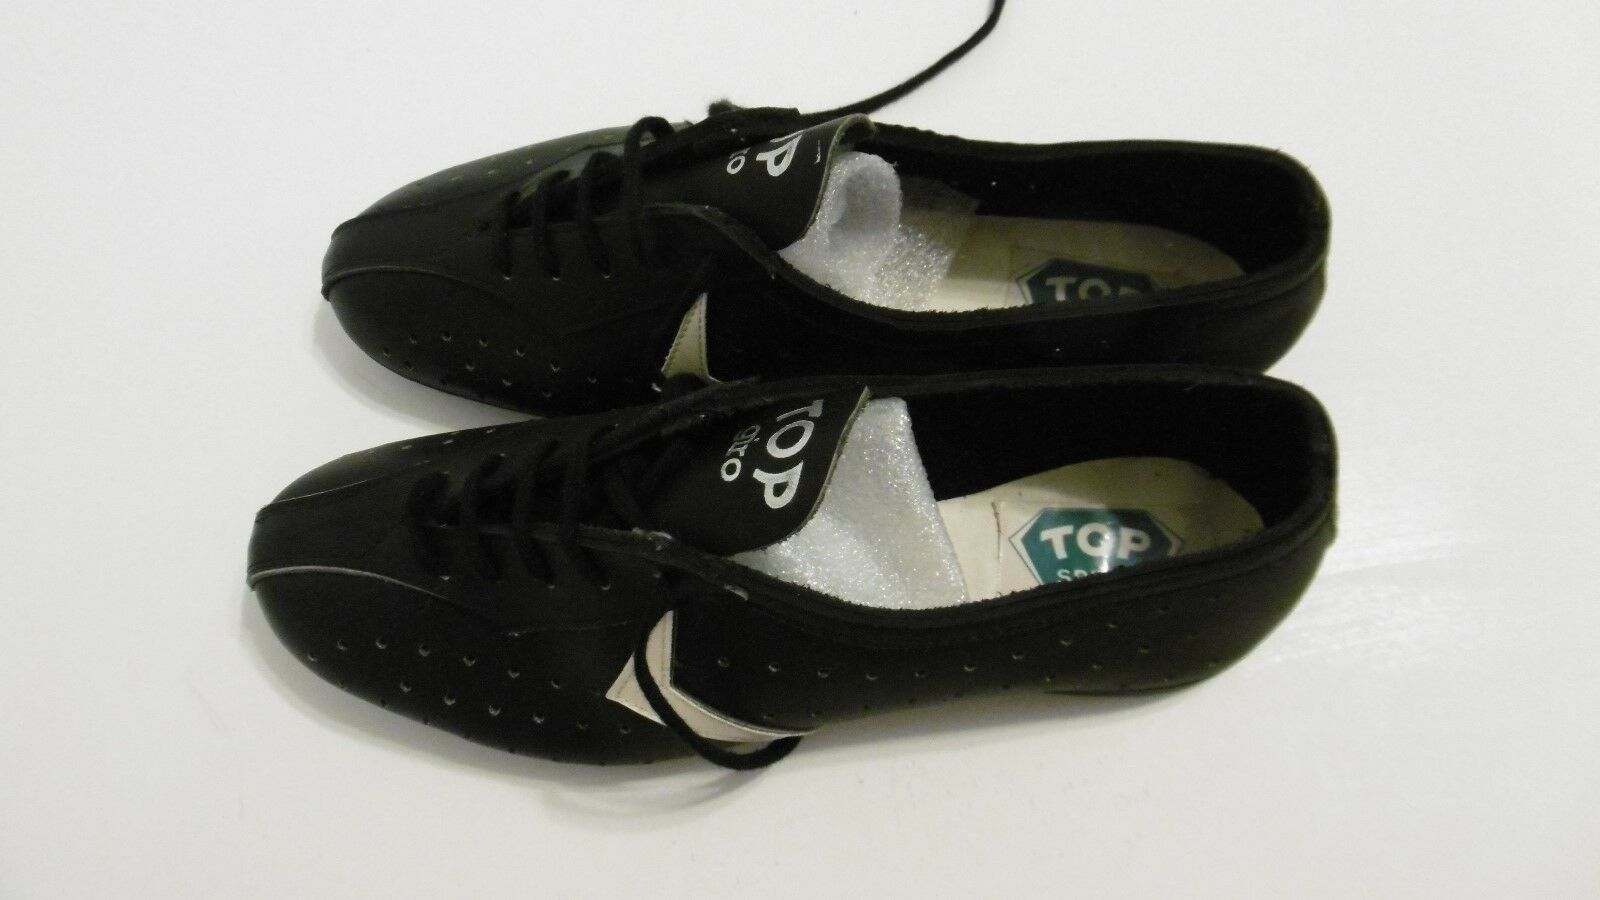 Vintage Top Giro Leather Cycling Shoes Size 39 NOS